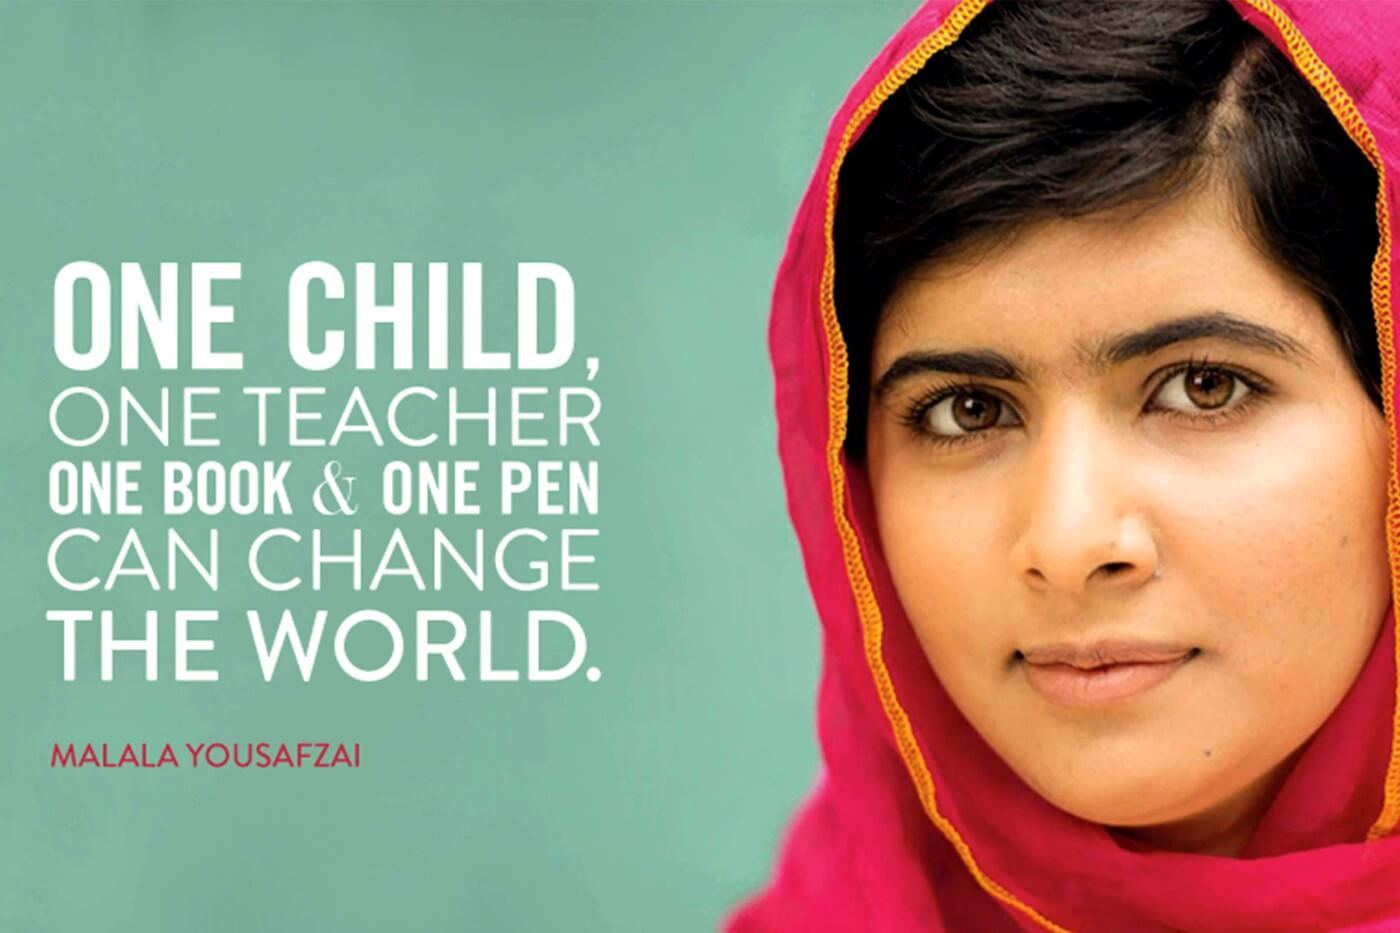 Motivational Poster Art - Malala Yousafzai Quote - One Child One Teacher  One Book One Pen Can Change The World - Framed Prints by Roseann Jahns |  Buy Posters, Frames, Canvas &